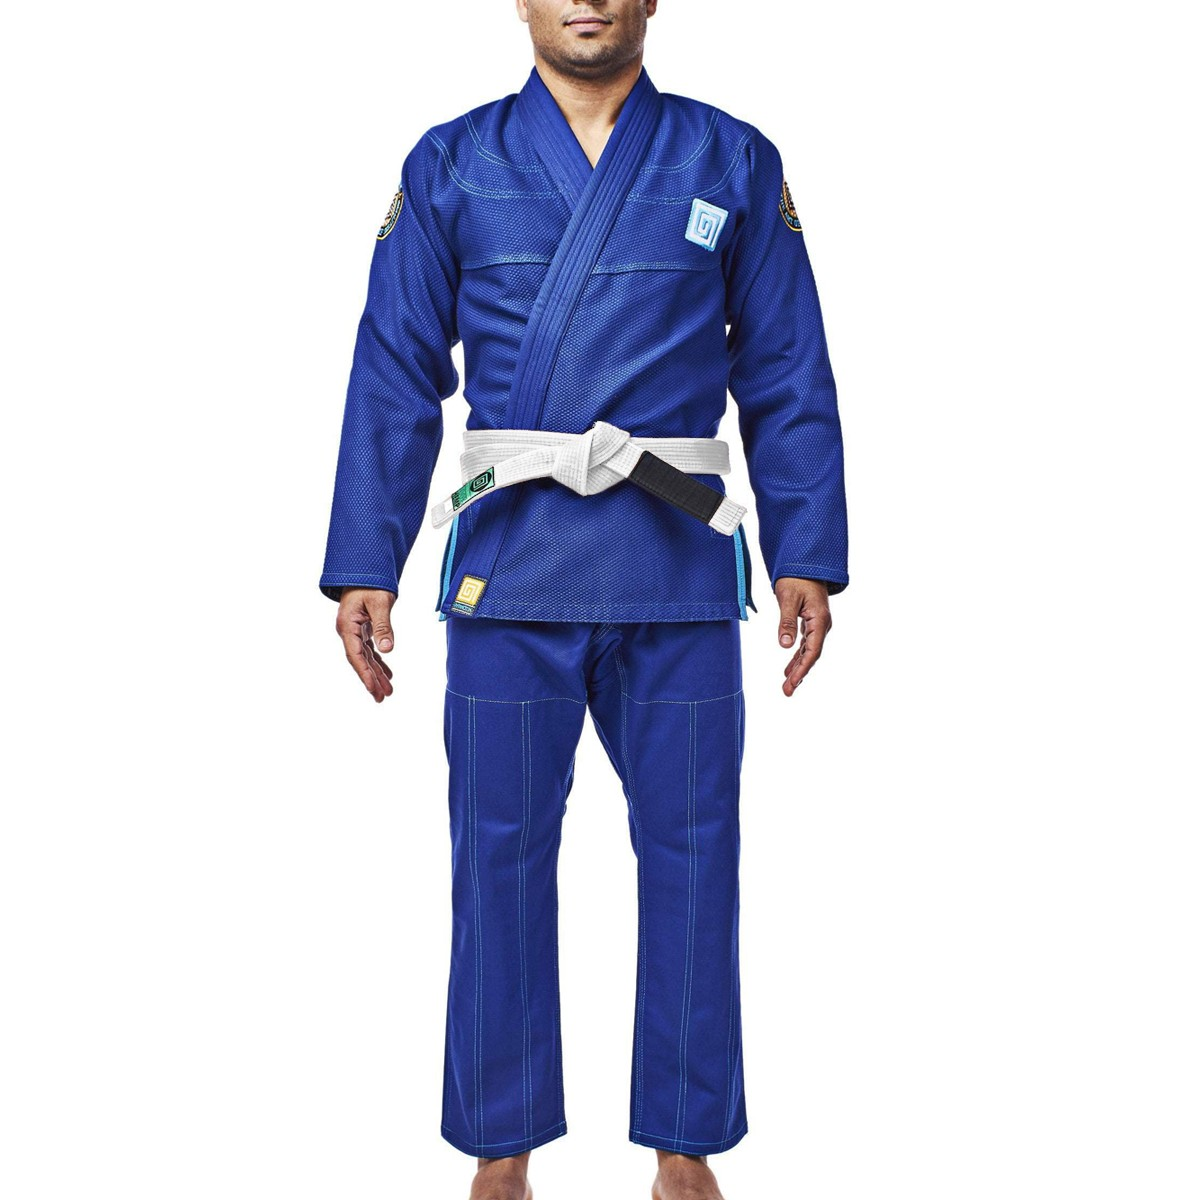 HYPNOTIK VORTEX V2 BJJ GI WITH BELT